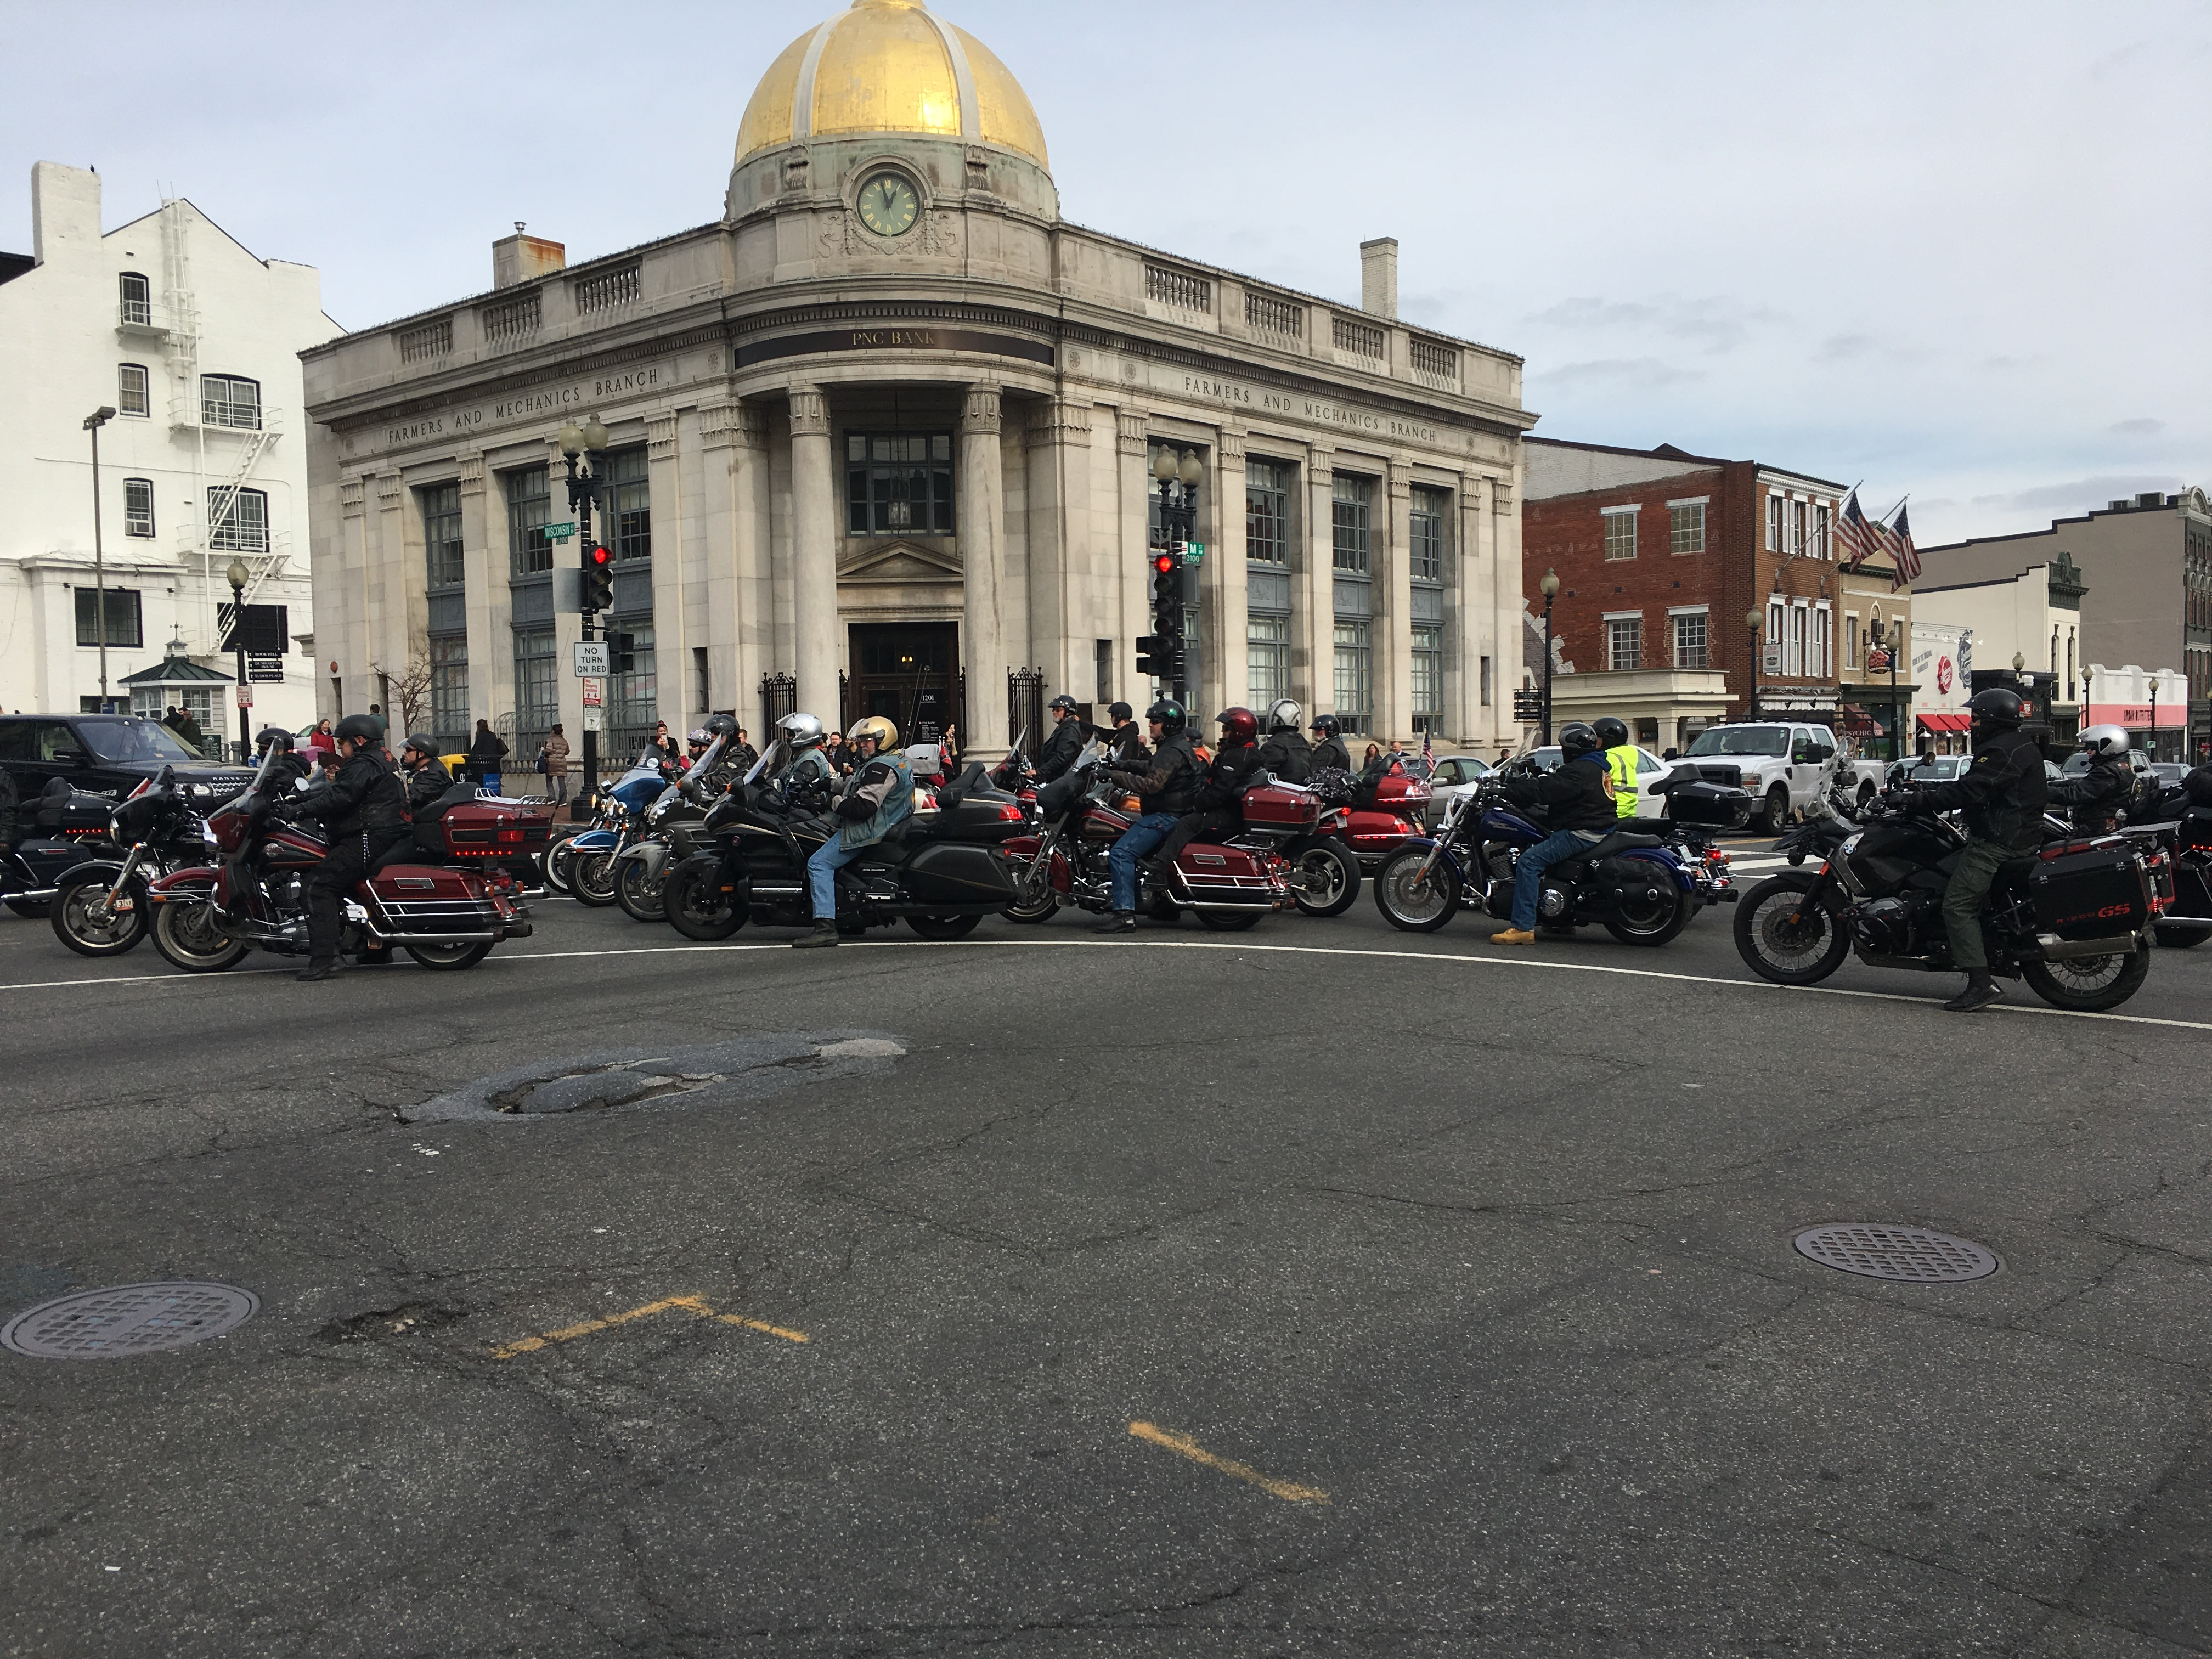 """Founder Chris Cox says Bikers for Trump """"started as a result of the outspoken nature of Donald Trump and the bikers' frustration with the direction this country was going,"""" Jan. 19, 2017. (J. Fatzick/VOA)"""